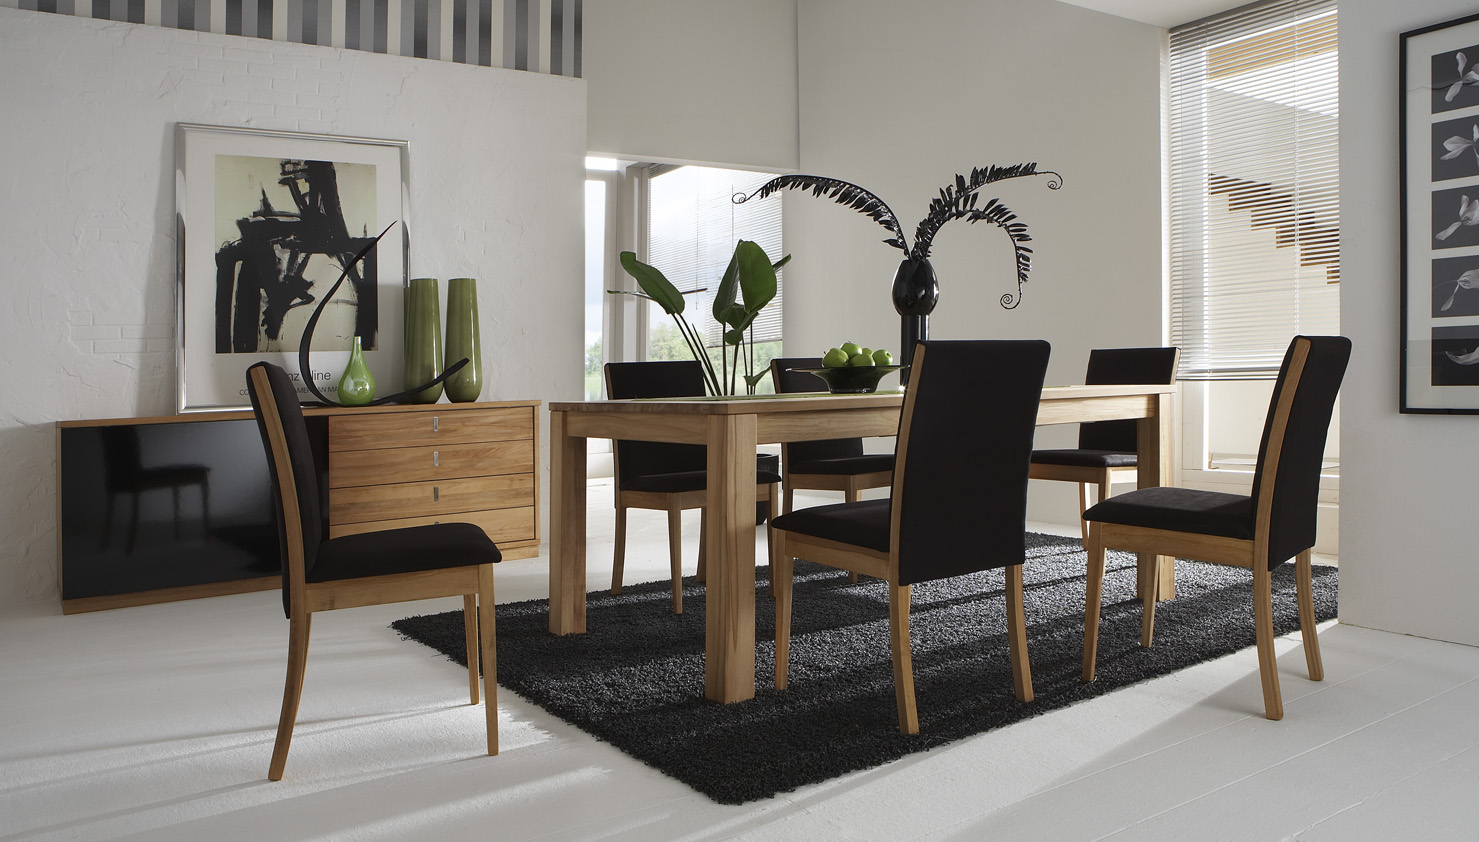 Magnificent Dining Room Furniture Using Table and Charming Chairs Decor